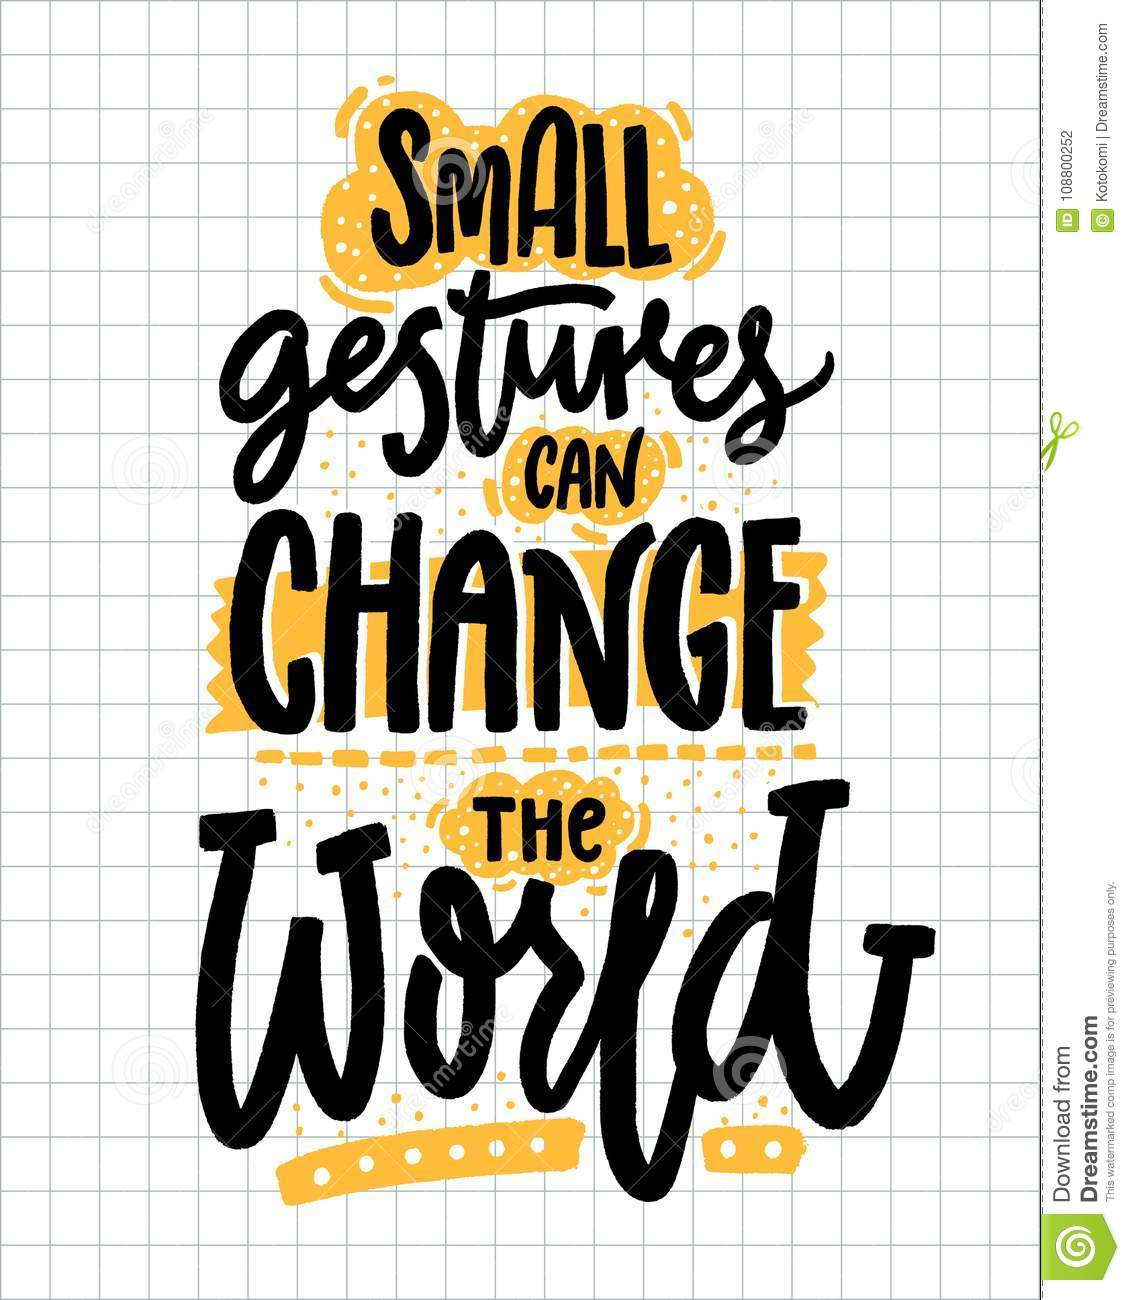 5ee243f50 Small gestures can change the world. Inspirational quote about kindness.  Positive motivational saying for posters and t-shirts